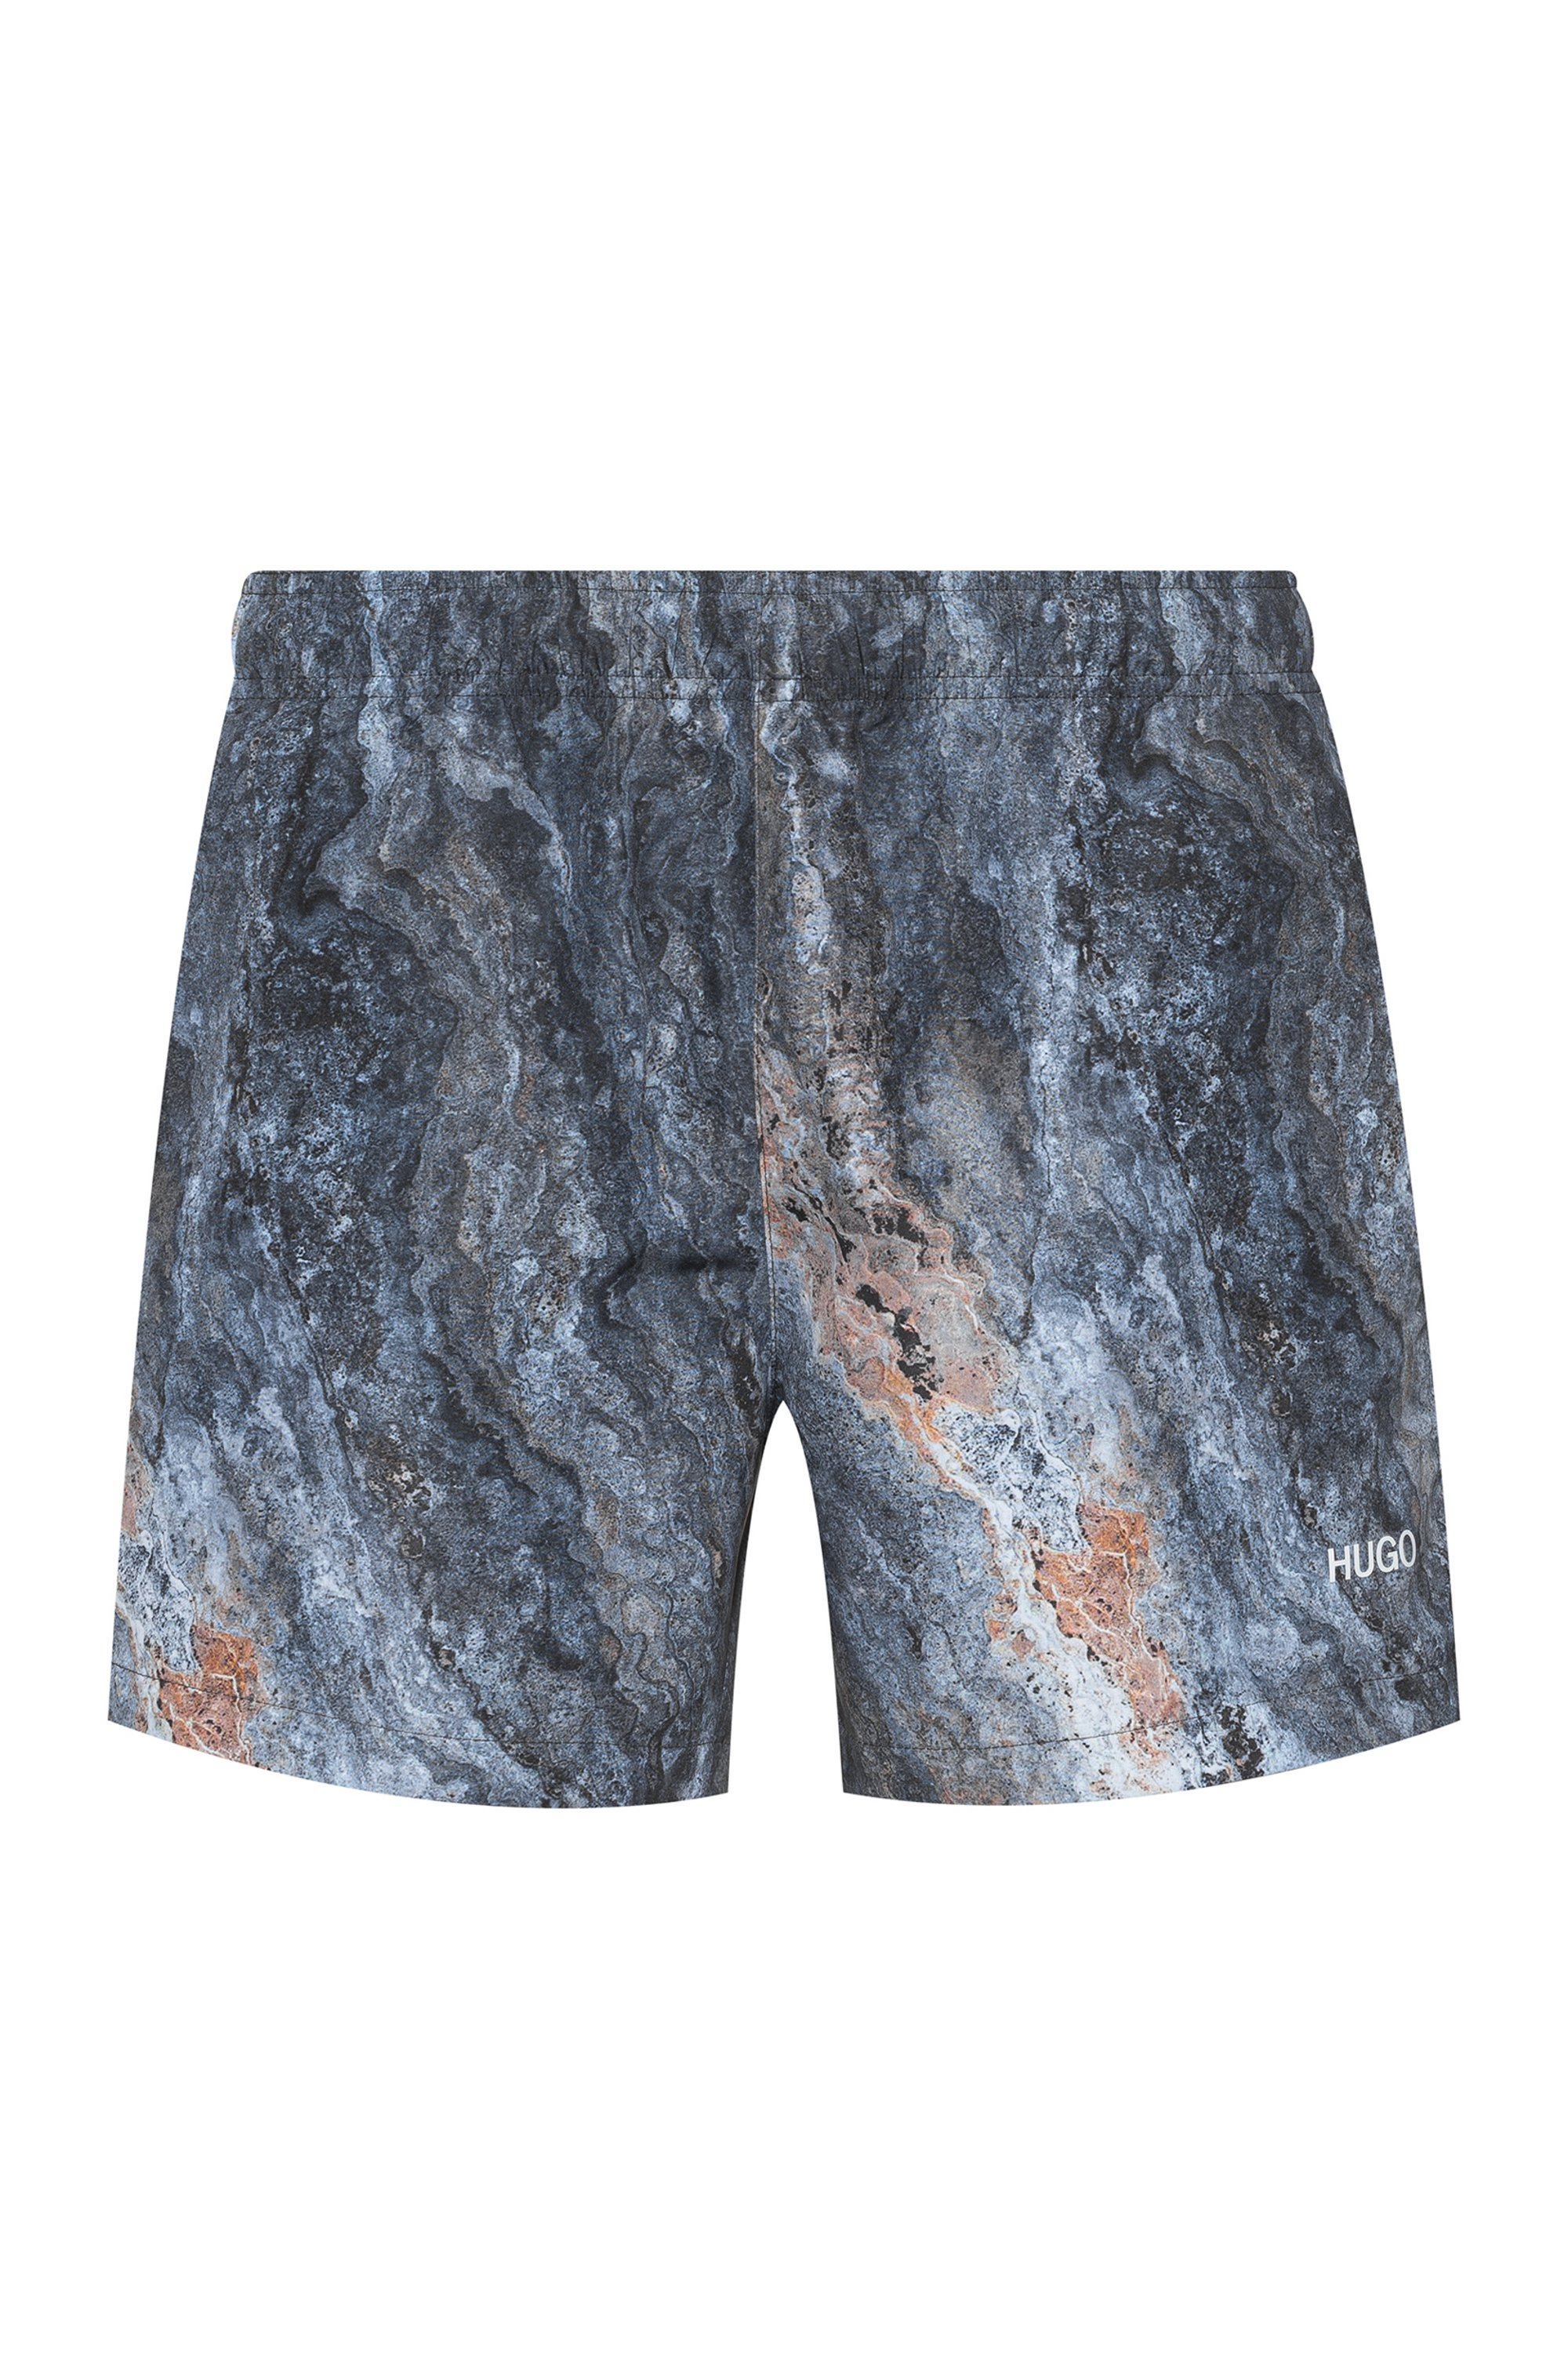 Marble-print swim shorts in quick-drying recycled fabric, Patterned